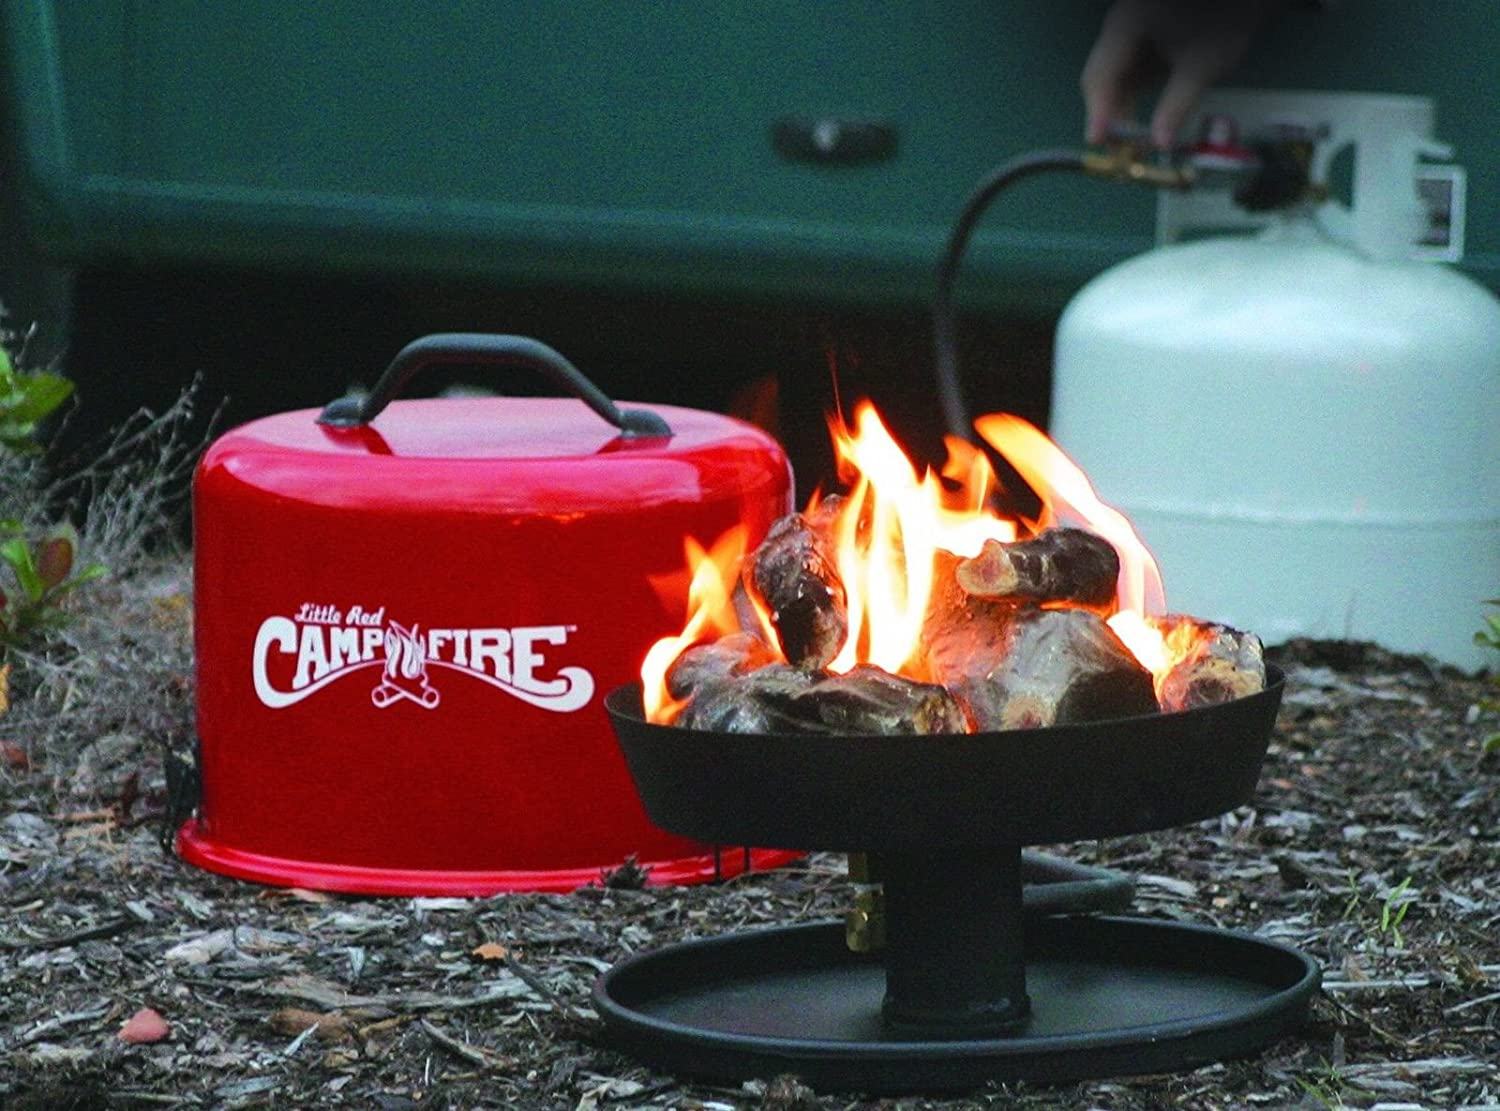 Camco little red propane fire pit